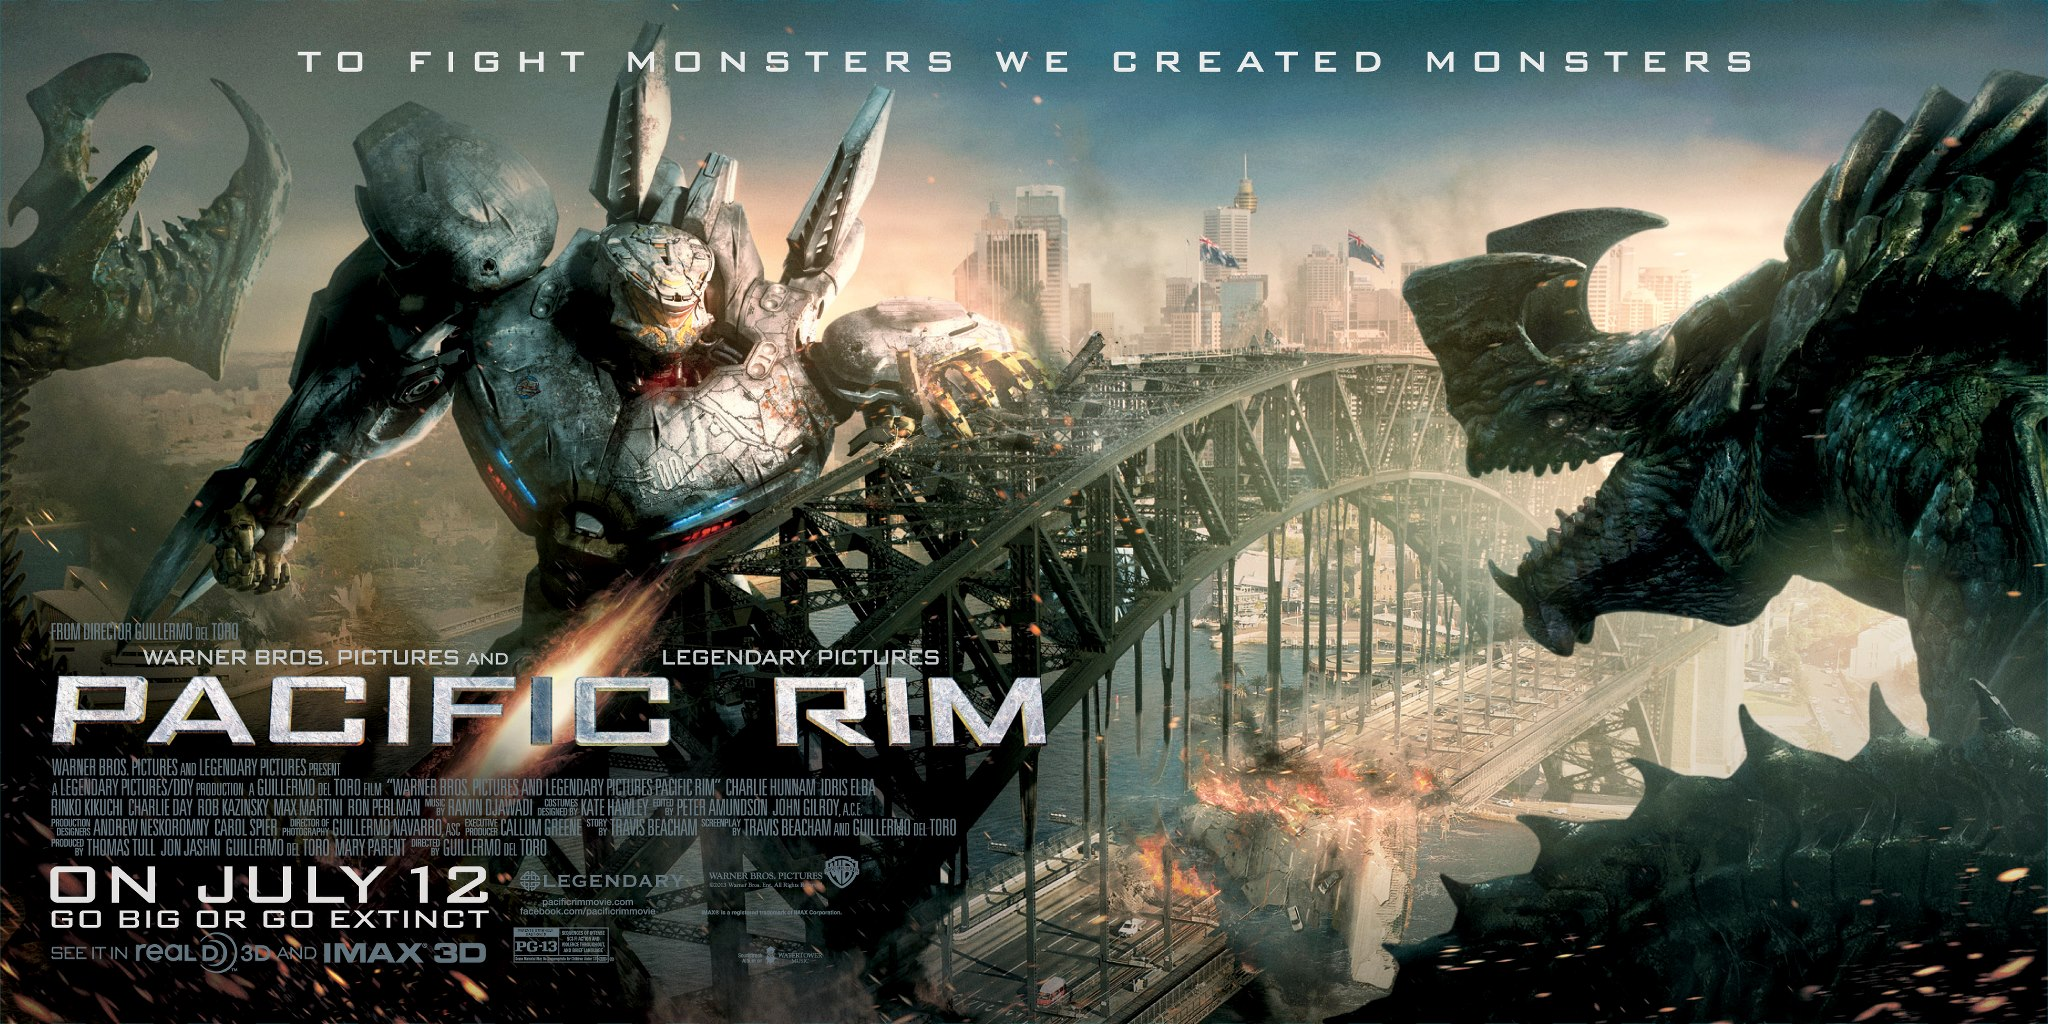 https://all-things-andy-gavin.com/wp-content/uploads/2013/11/pacific-rim-poster-banner.jpg